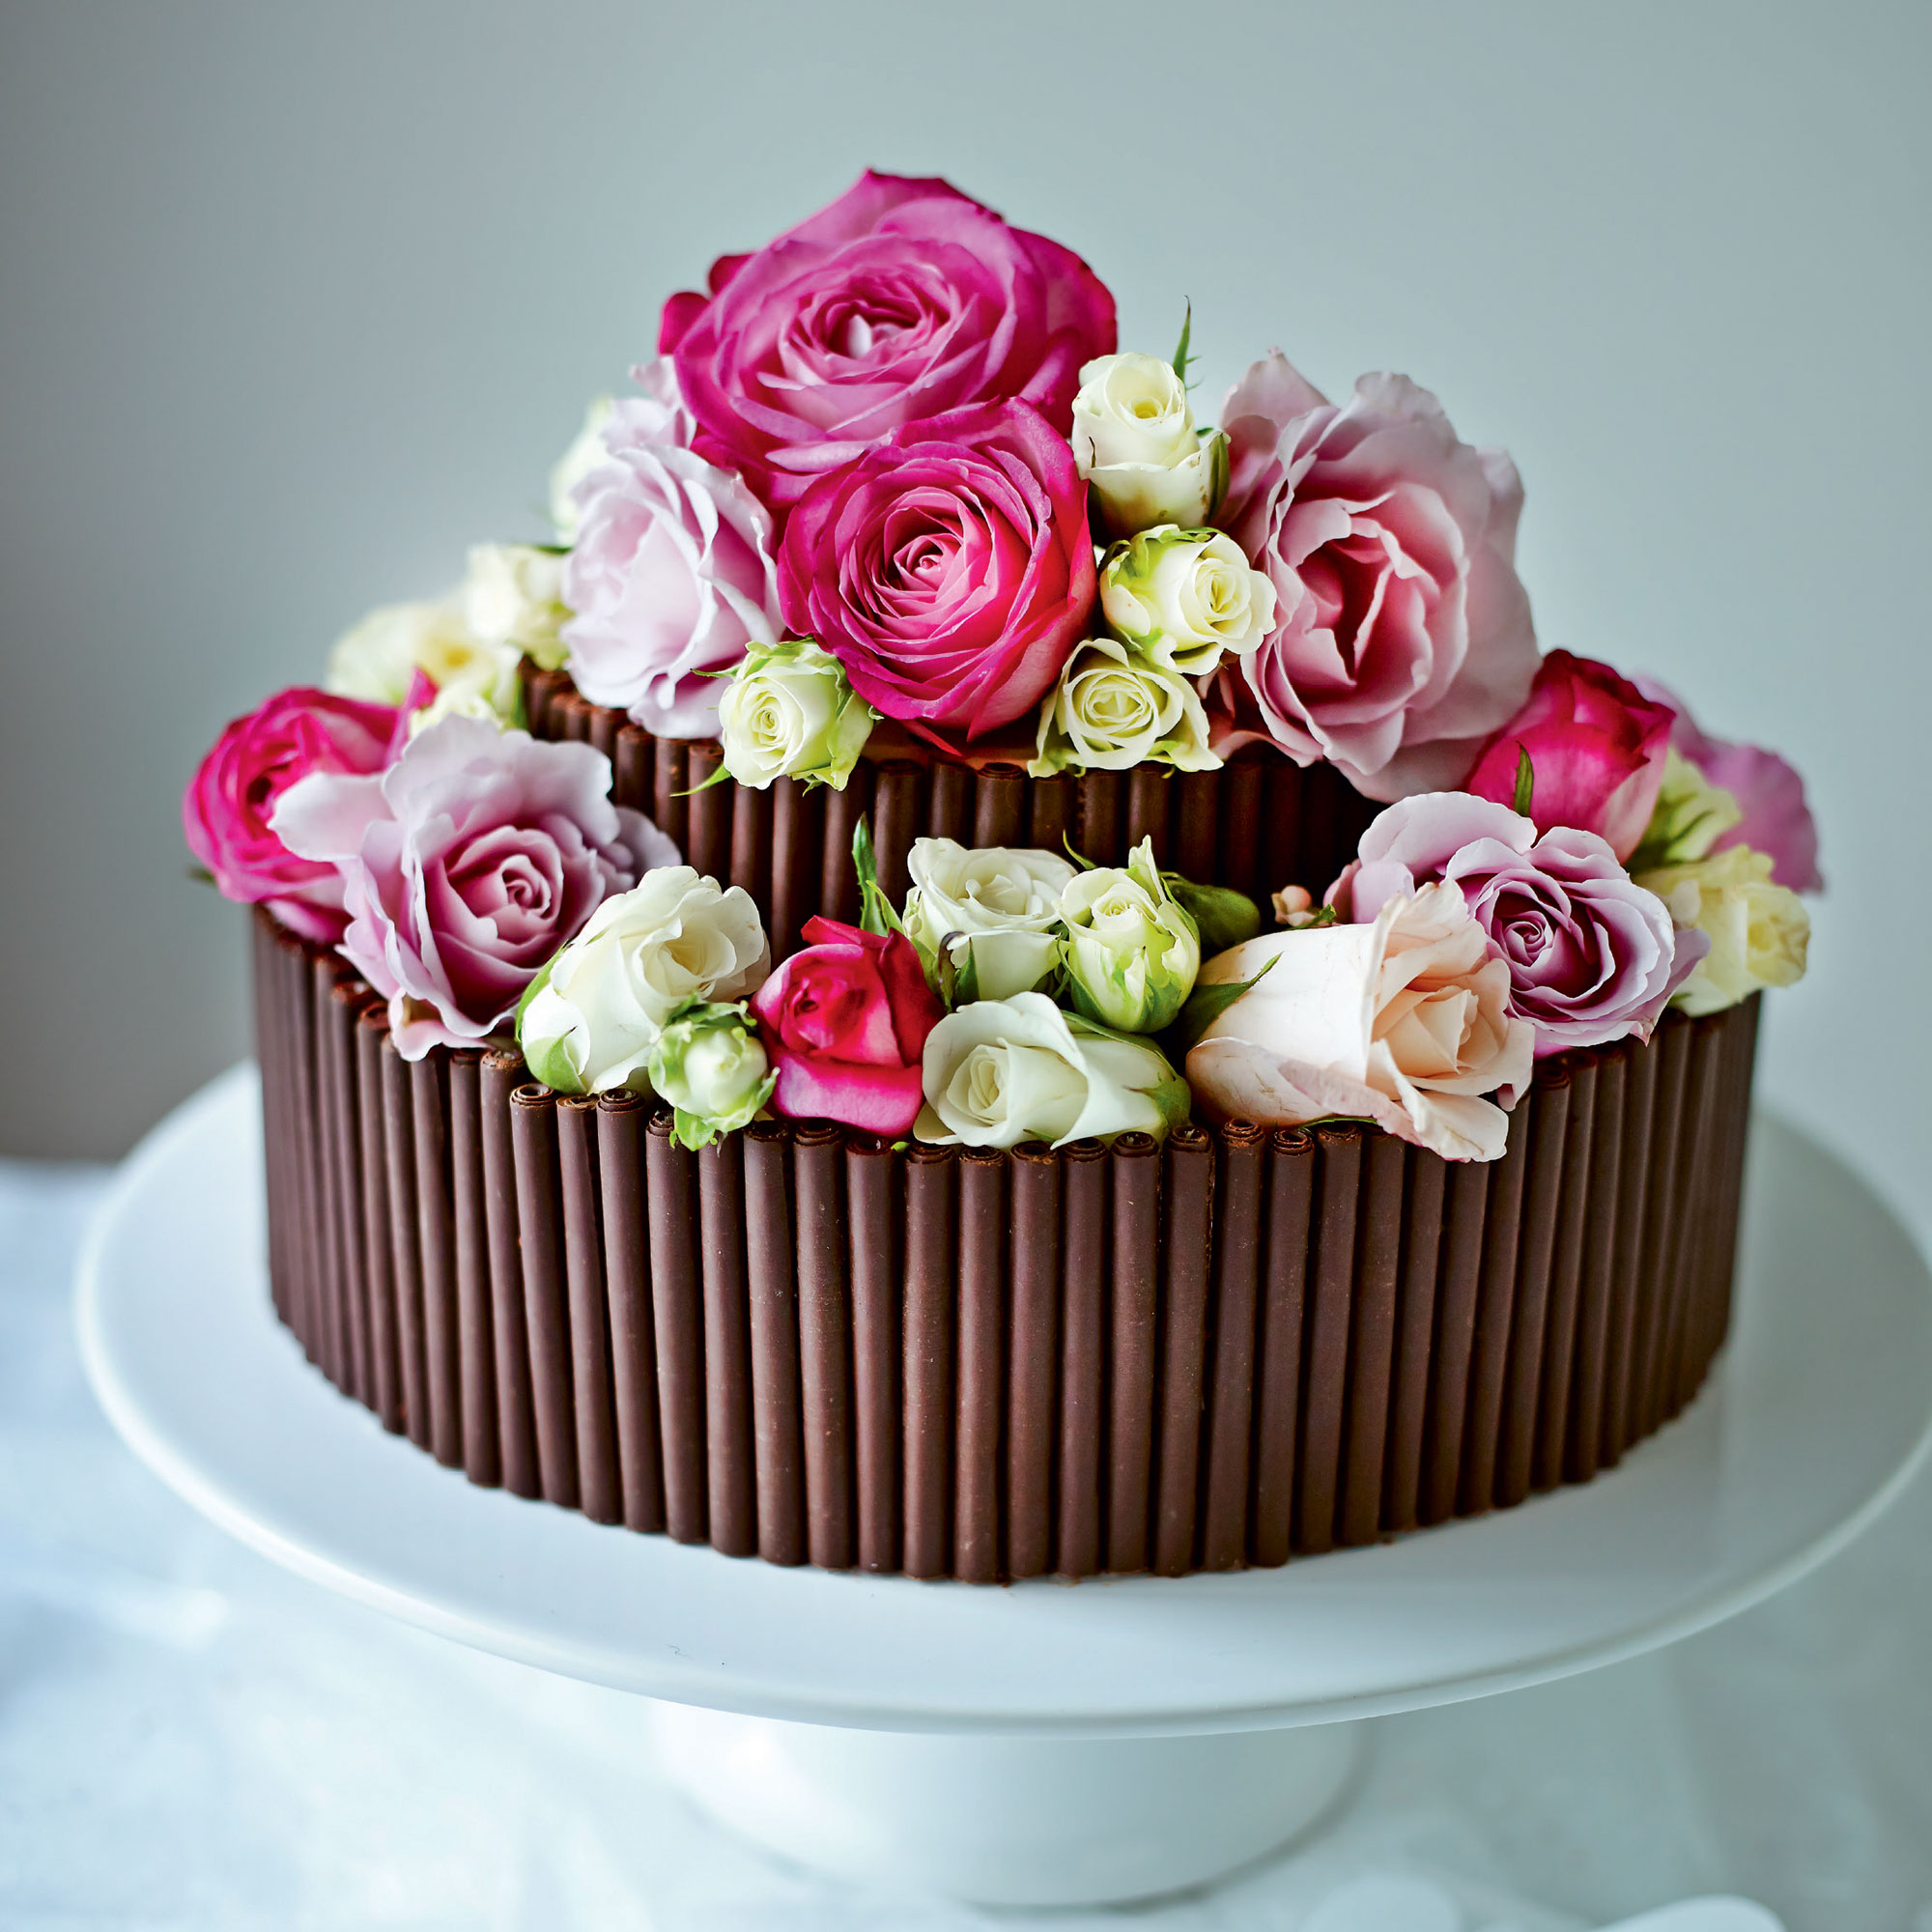 Jo Wheatley S Rose And Chocolate Wedding Cake Dessert Recipes